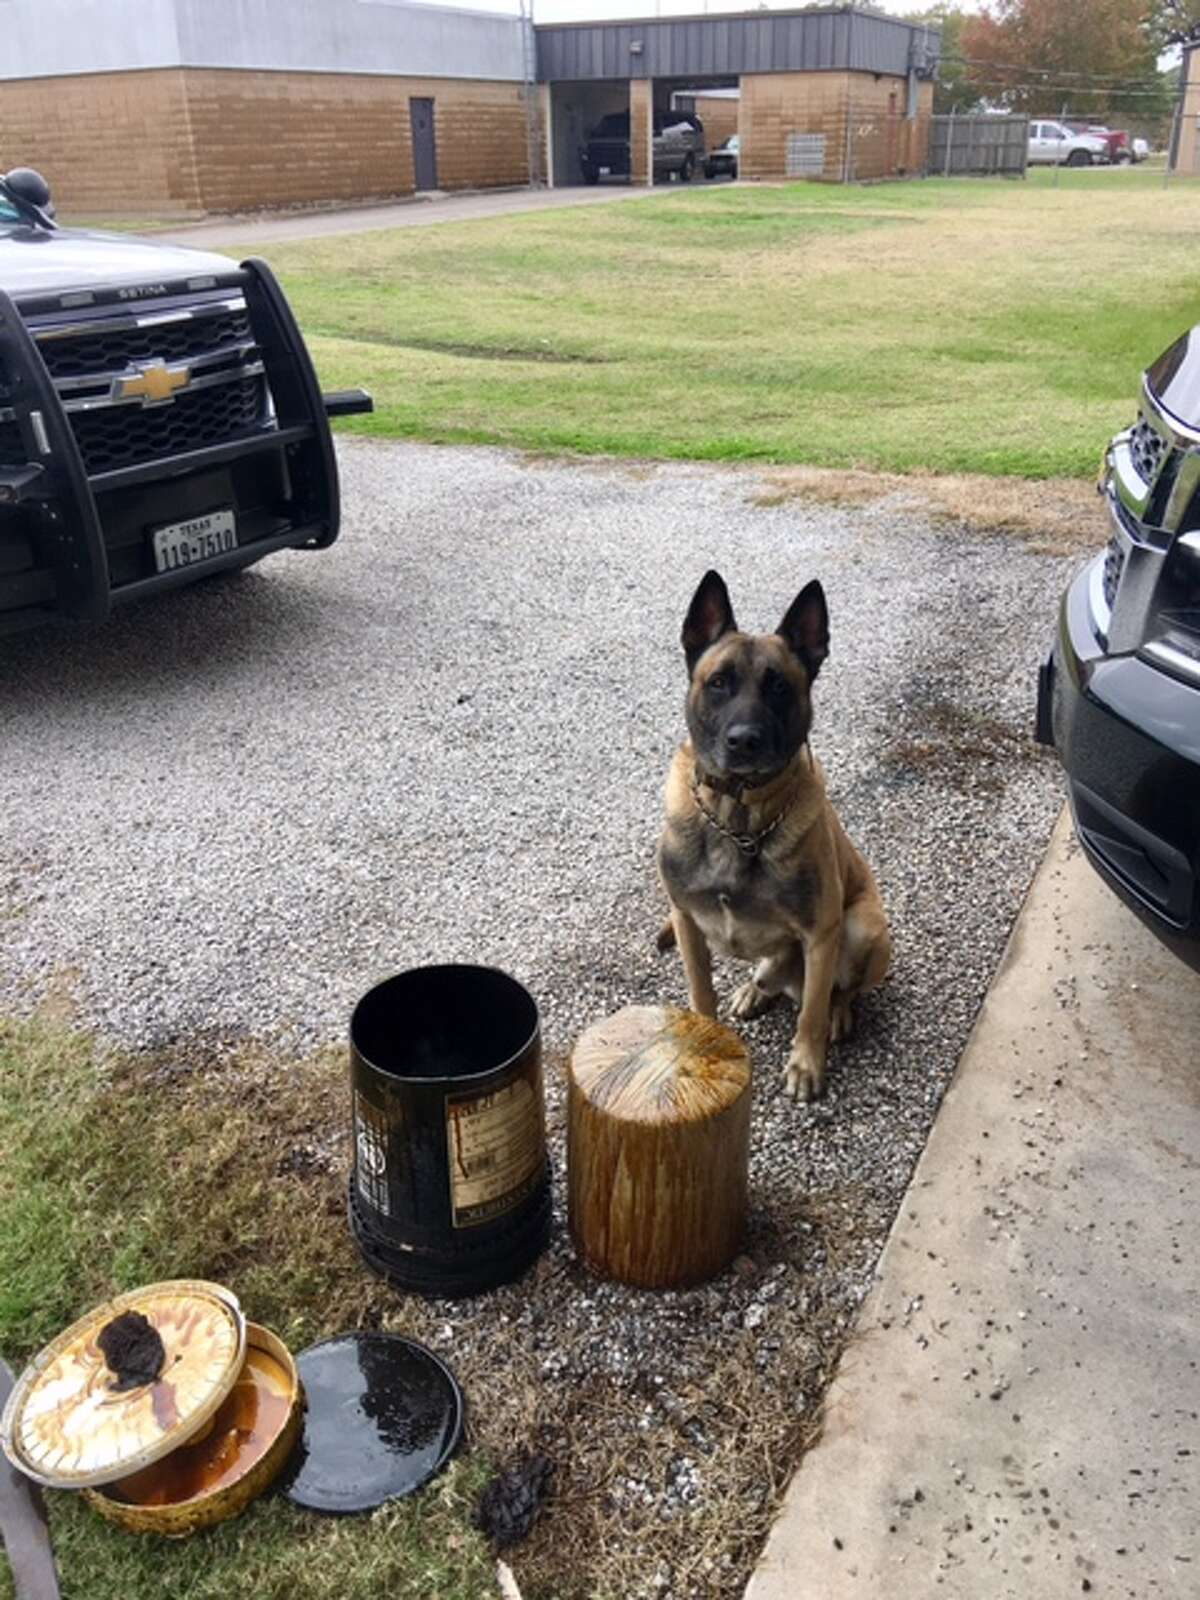 """Sgt. Randy Thumann observed """"many criminal indicators"""" while speaking with the driver, 54-year-old Celerina Lopez Rosa. His K9 partner Lobos then confirmed his suspicions of a 5-gallon oil bucket in the truck's bed by alerting Thumann to it, according to the release."""